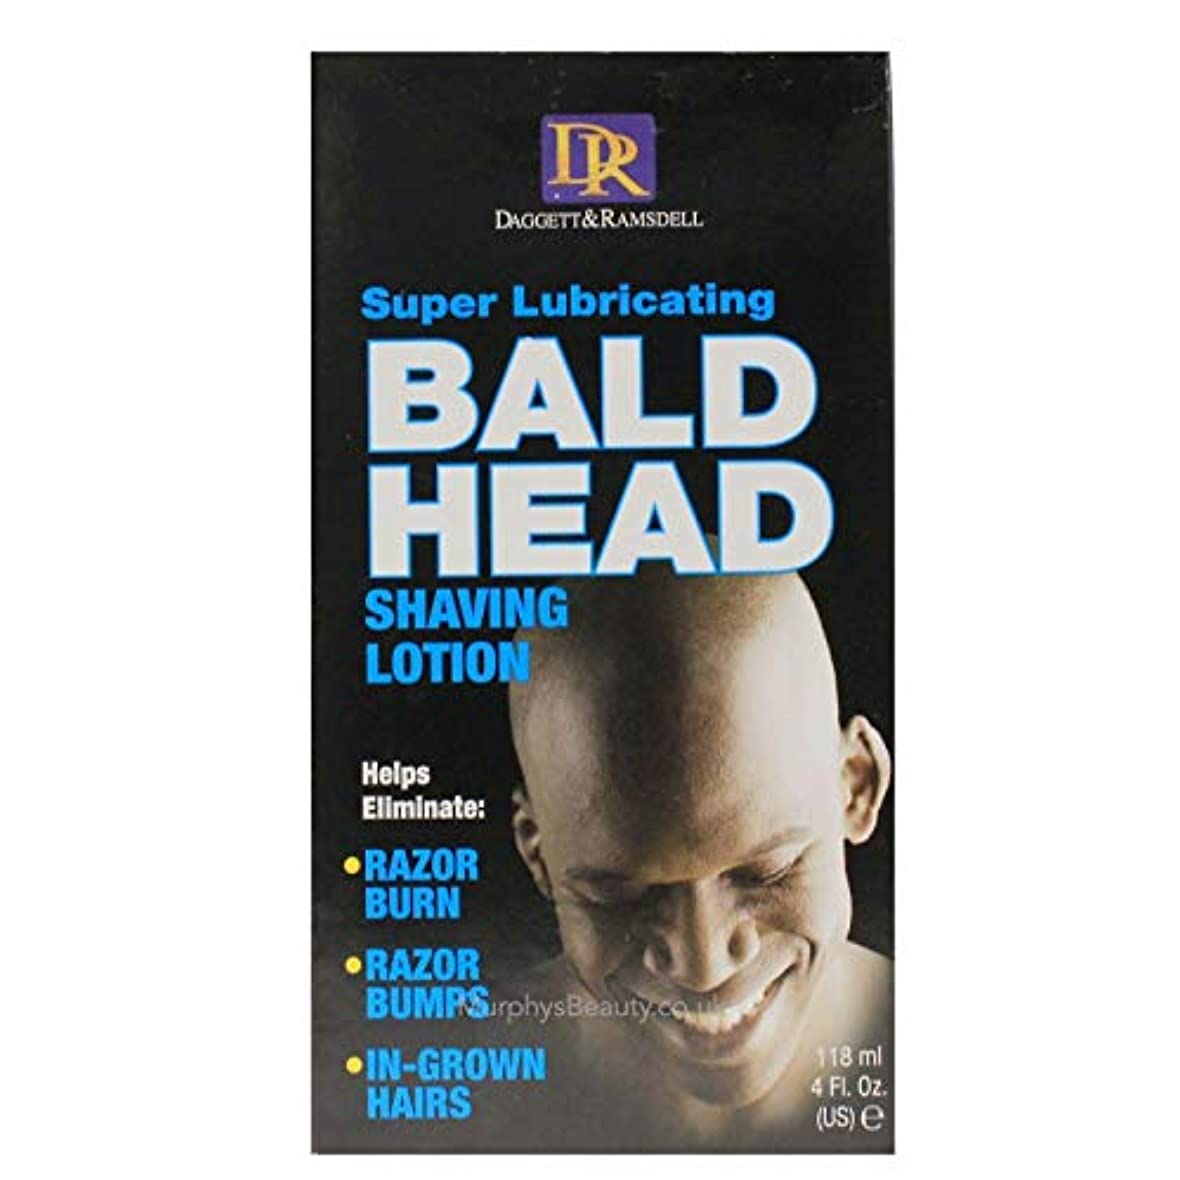 Daggett & Ramsdell Super Lubricating Bald Head Shaving Lotion Hair Removal Products (並行輸入品)